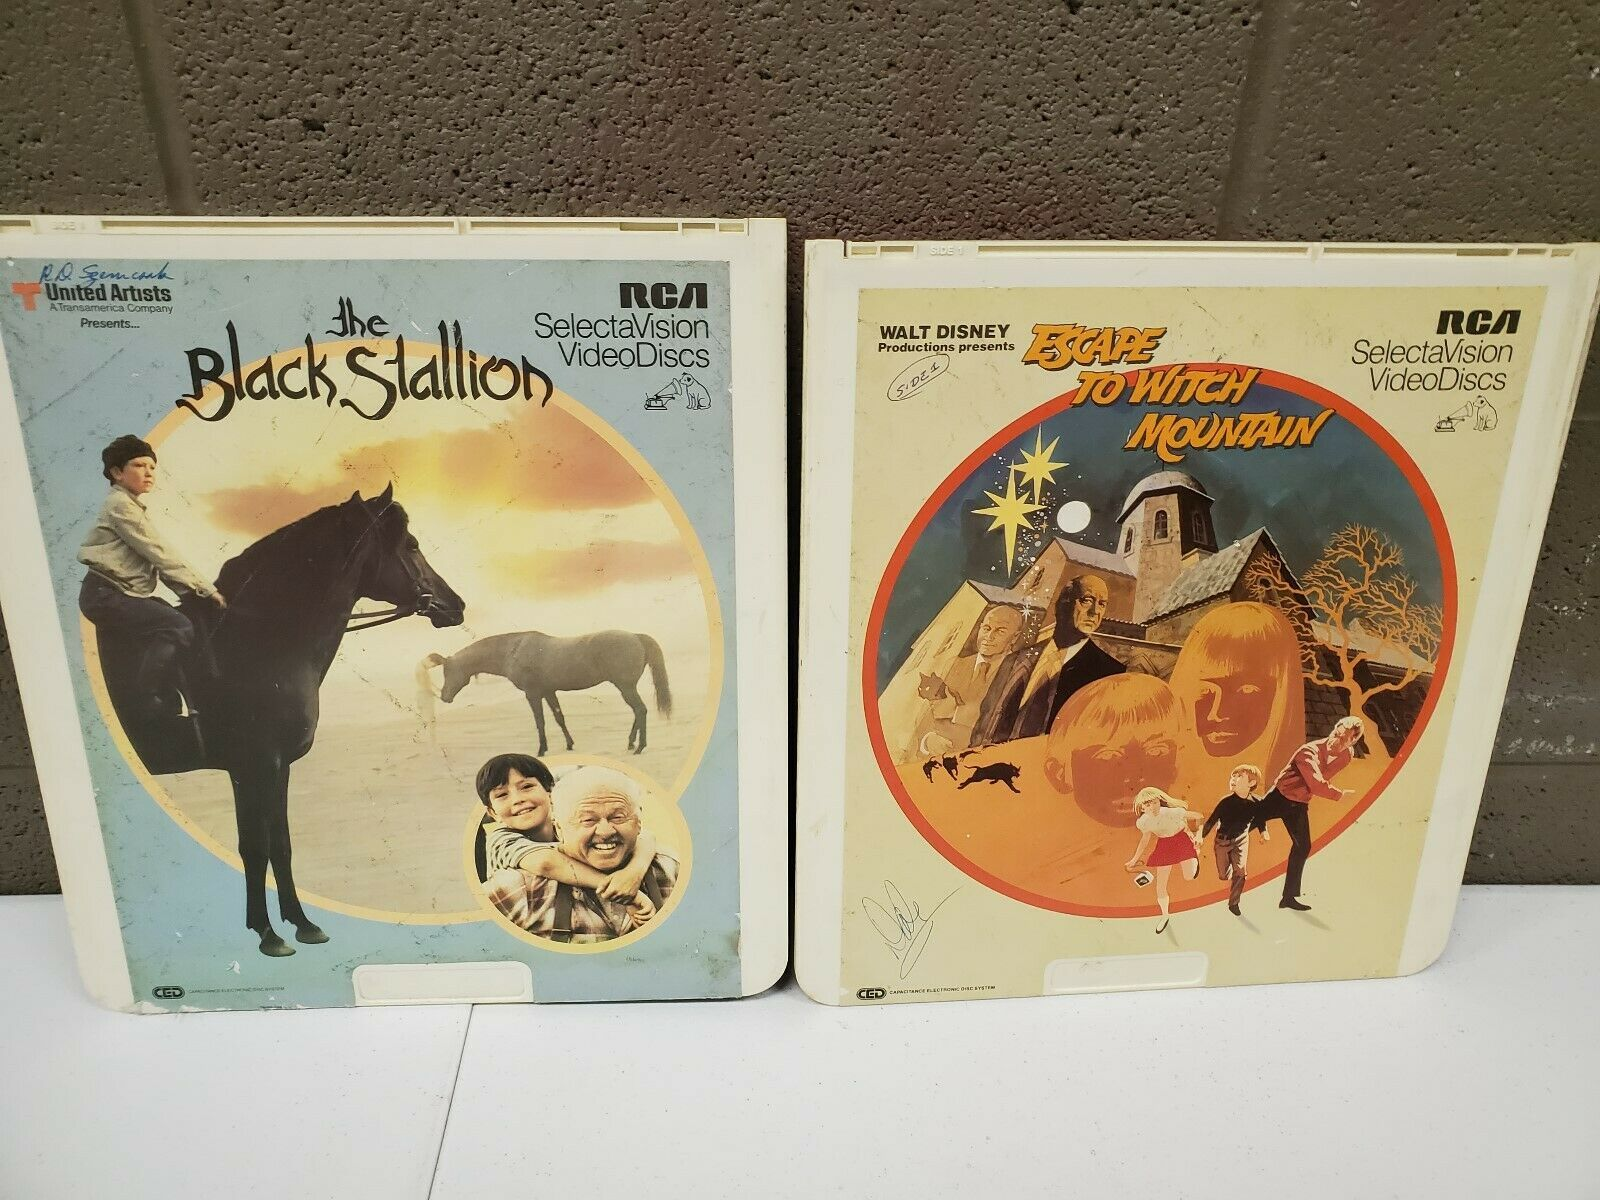 Primary image for CED Videodisc Walt Disney Escape to Witch Mountain and the Black Stallion (c22)